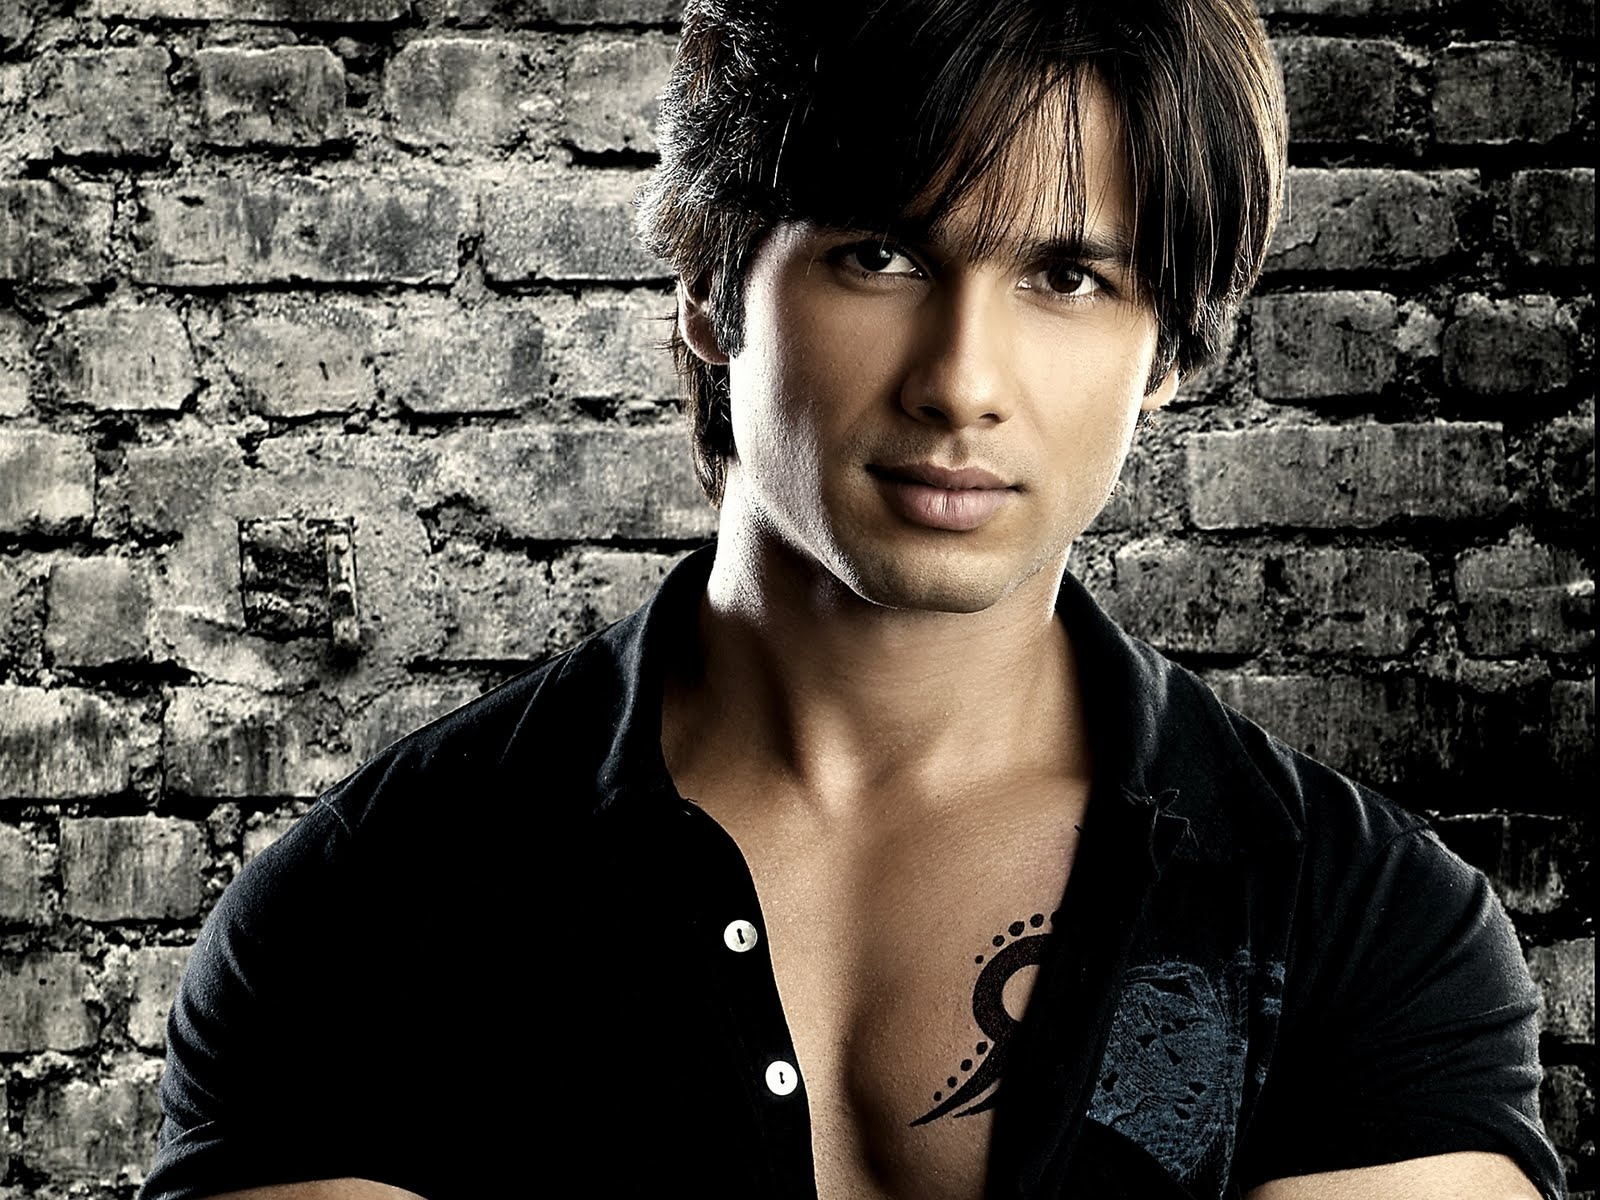 Shahid Kapoor Wallpapers High Resolution And Quality Download